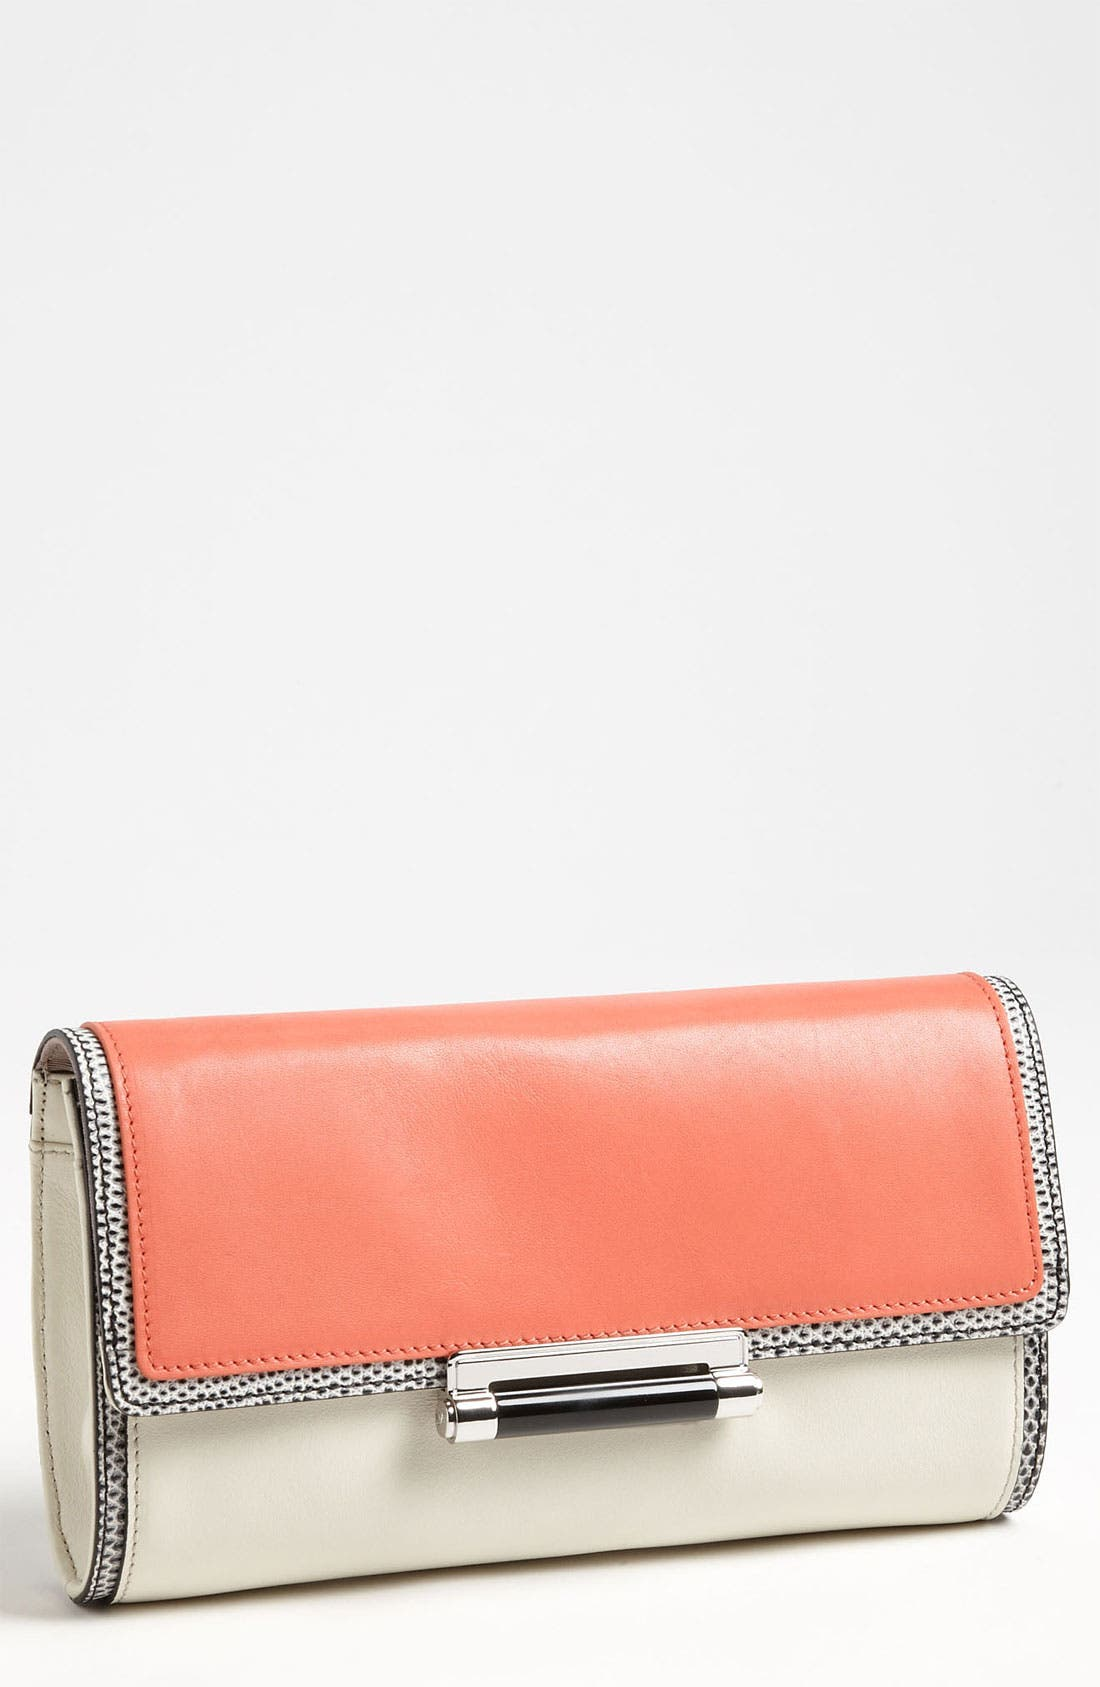 Alternate Image 1 Selected - Diane von Furstenberg 'Gracie' Clutch